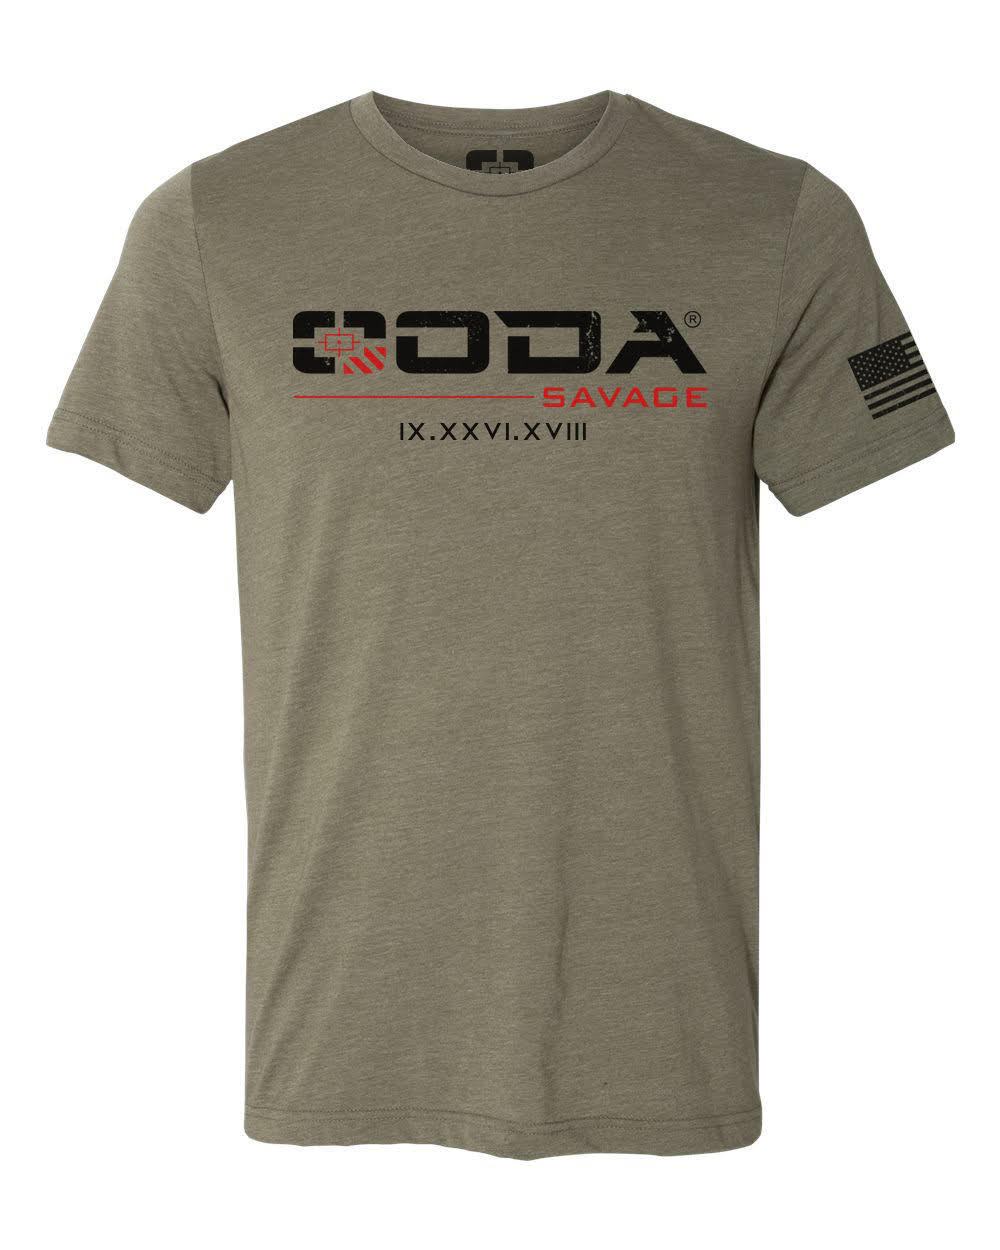 OODA Savage Apparel T-shirt